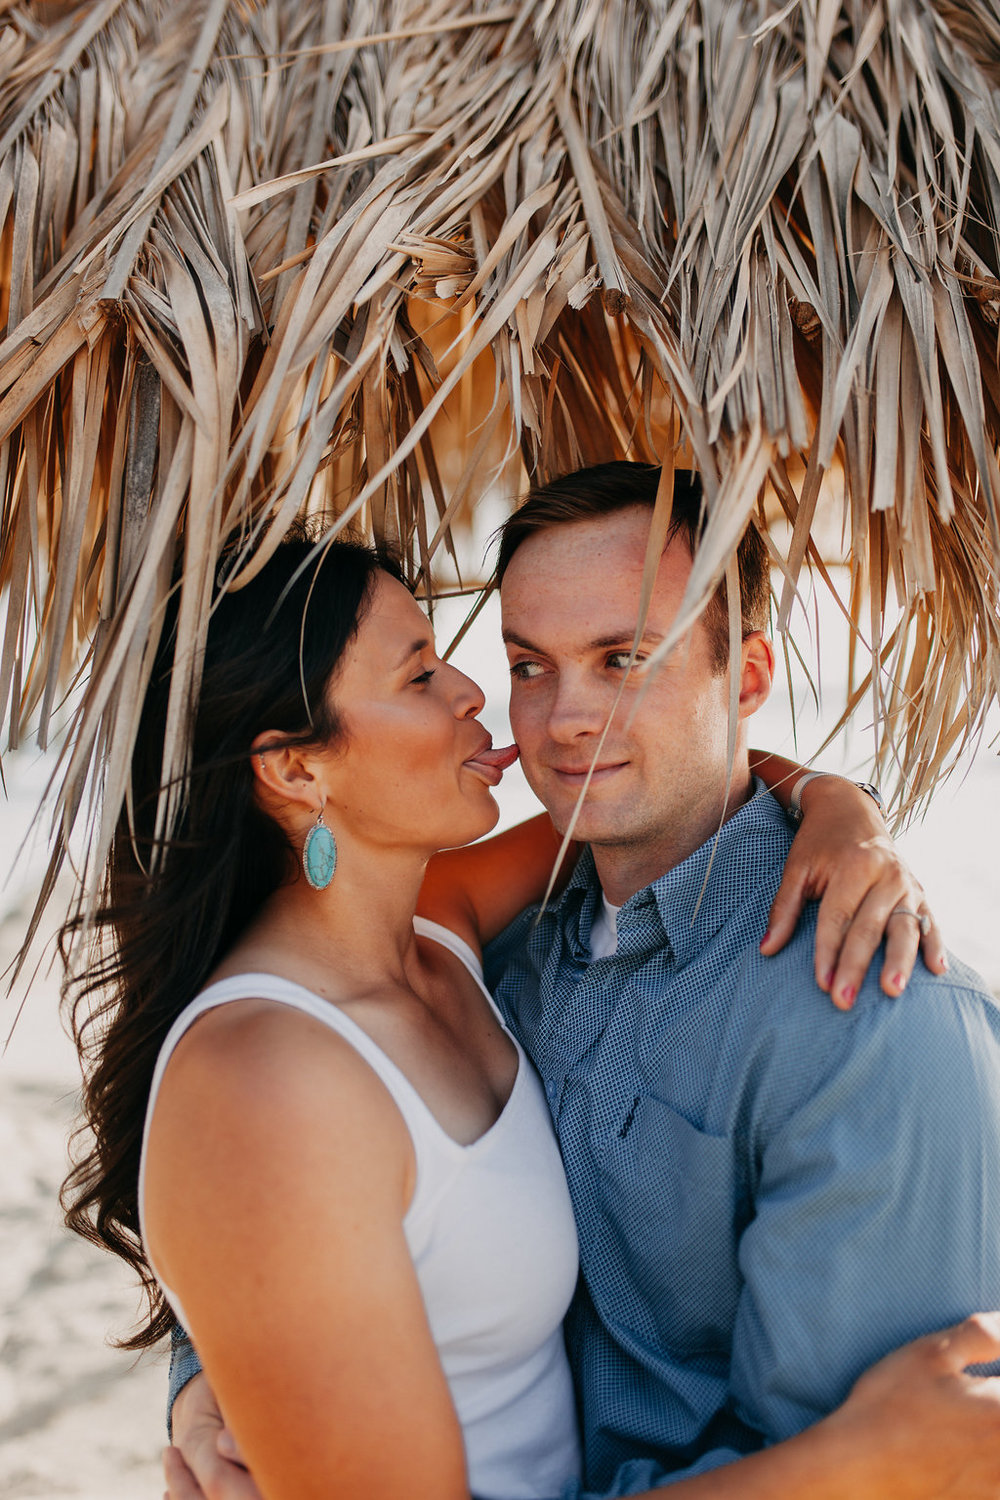 pinkfeatherphotography-WindandSeabeachengagementshoot(27of152).jpg